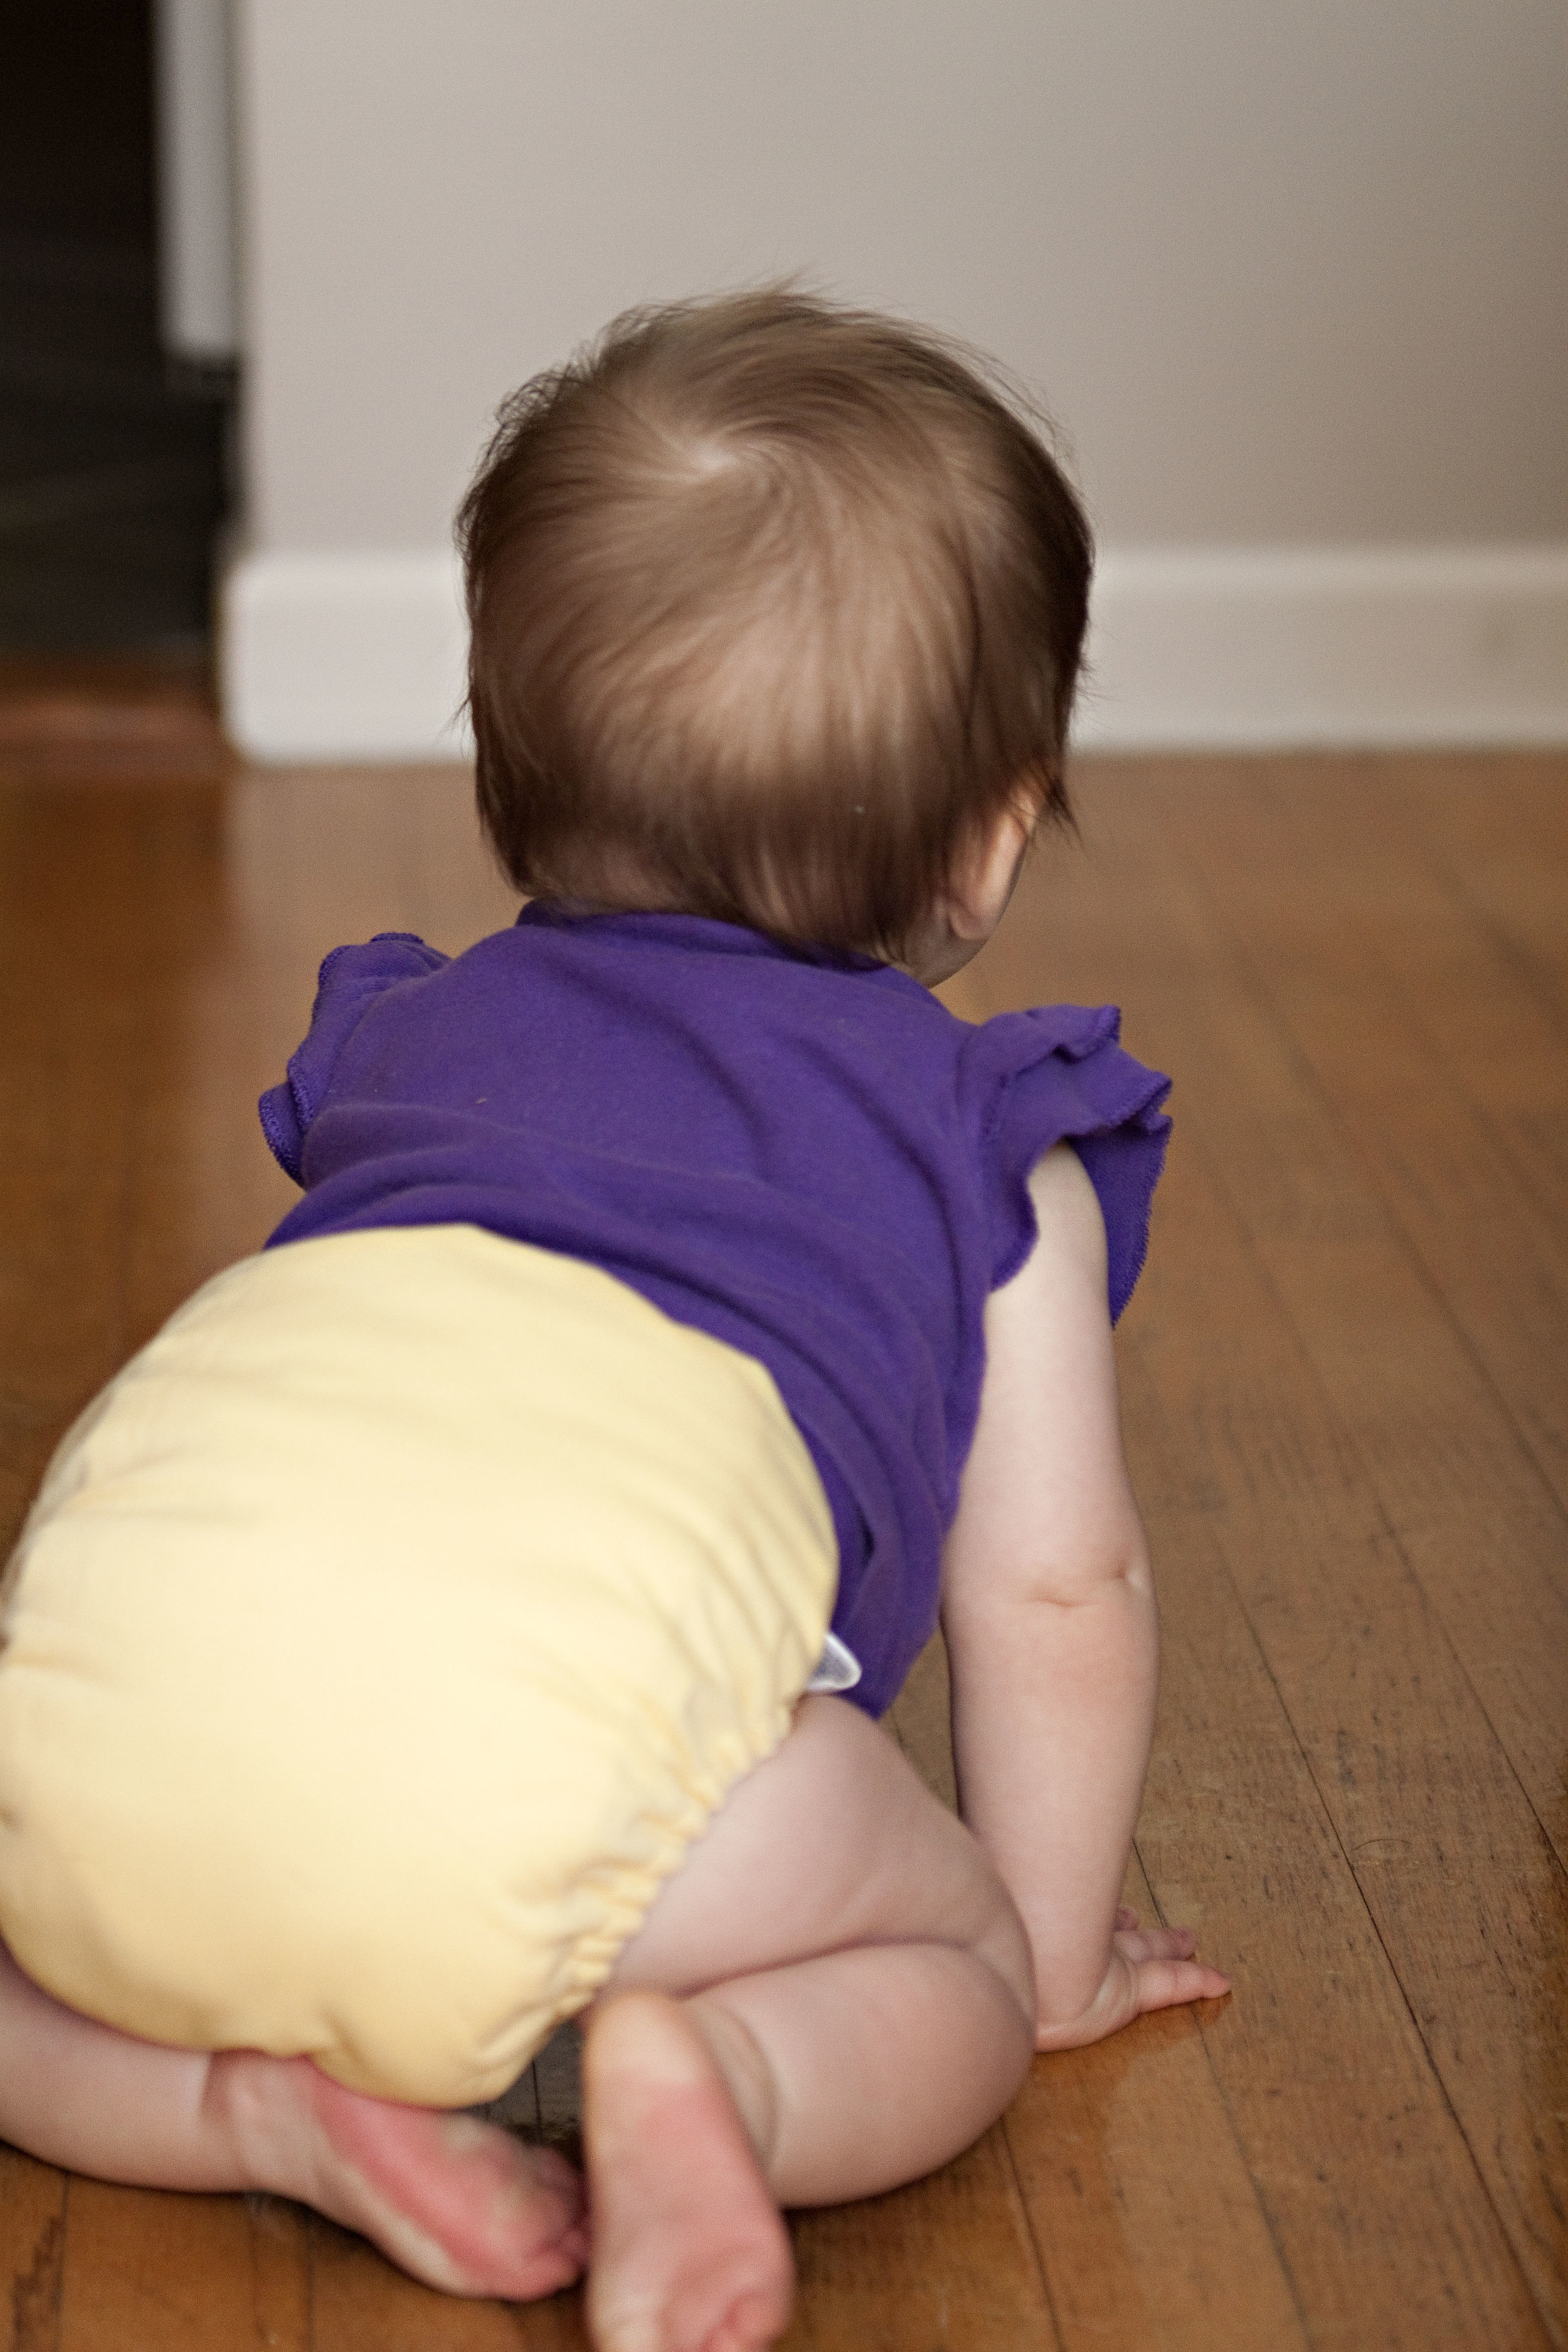 """Diapers! - They are the epitome of single use products and are so hugely wasteful. While cloth diapers aren't the right choice for every family or situation, we found they provided a huge cost savings for our family. We purchased several that we were able to use, wash, reuse, pass along to the next kid and then even resell when we were out of diapers. The water used to clean them is far less wasteful than hundreds of pounds of disposables piling up in landfills. They're really not that gross and come in super cute patterns and colors. Plus, kids usually potty train faster when they can """"feel"""" they're wet vs disposables that remove the wetness."""